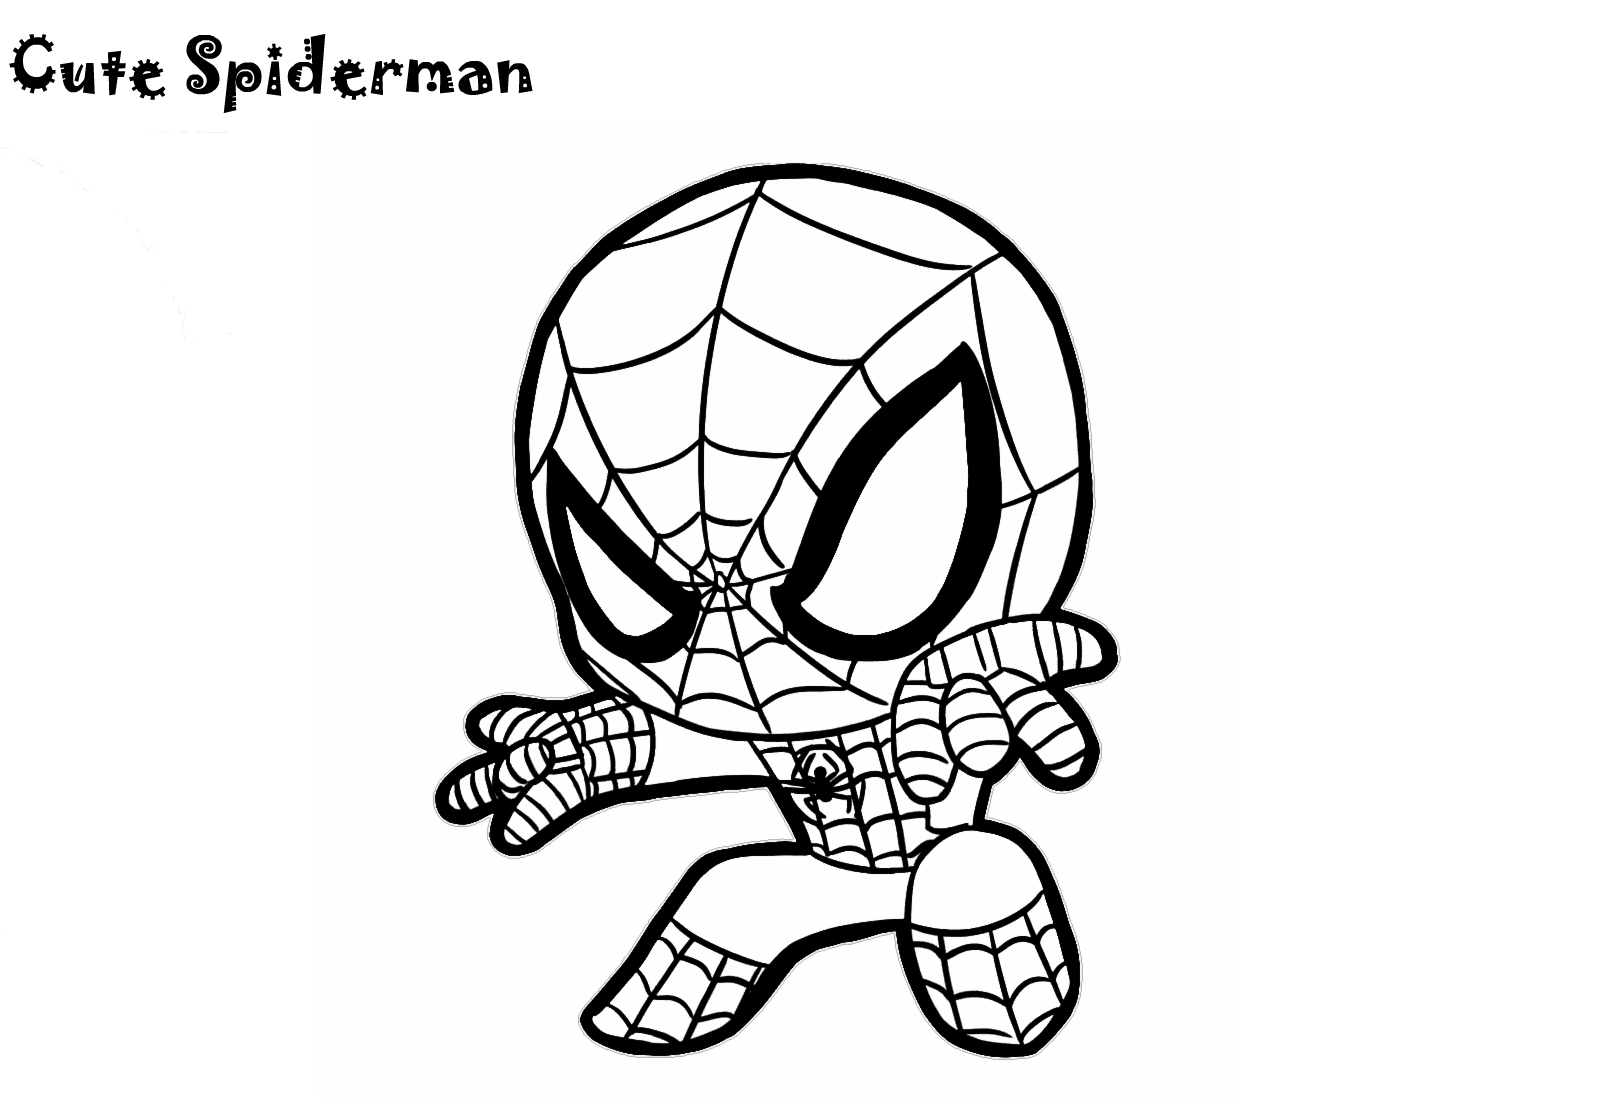 Cute Little Spiderman Coloring Pages Chibi Cartoon Sheets For Kids